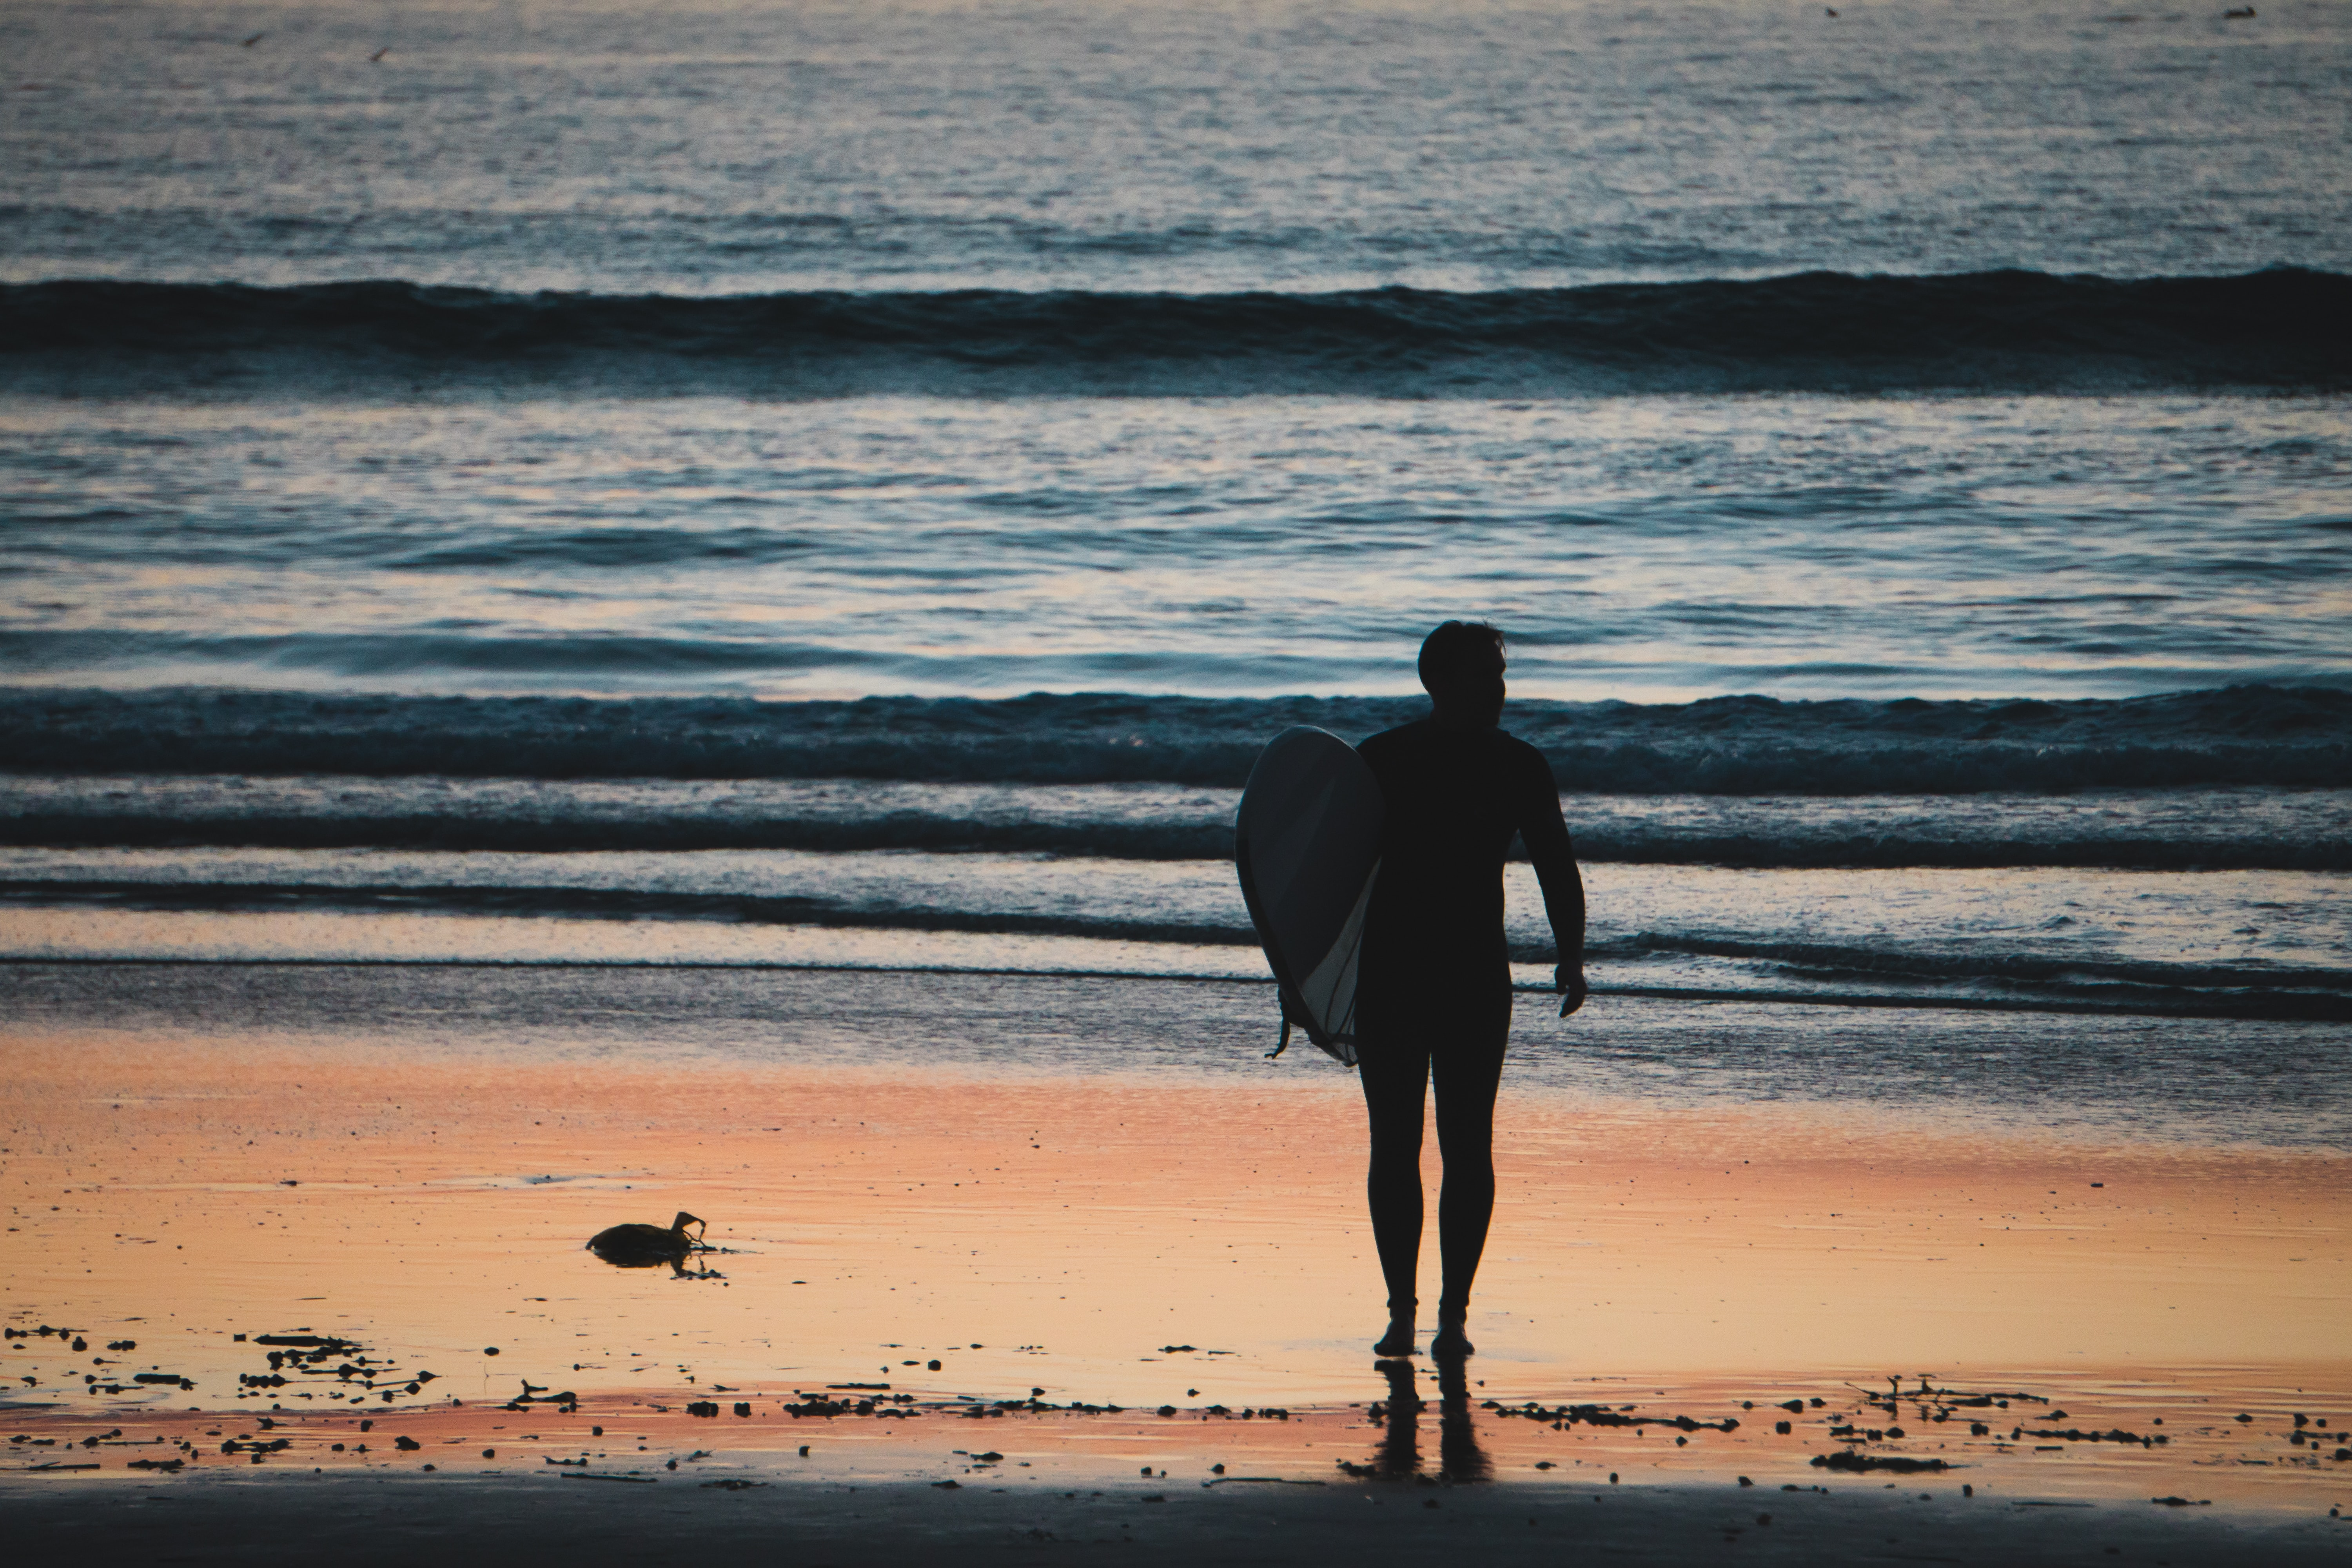 silhouette of man holding surfboard walking near shoreline